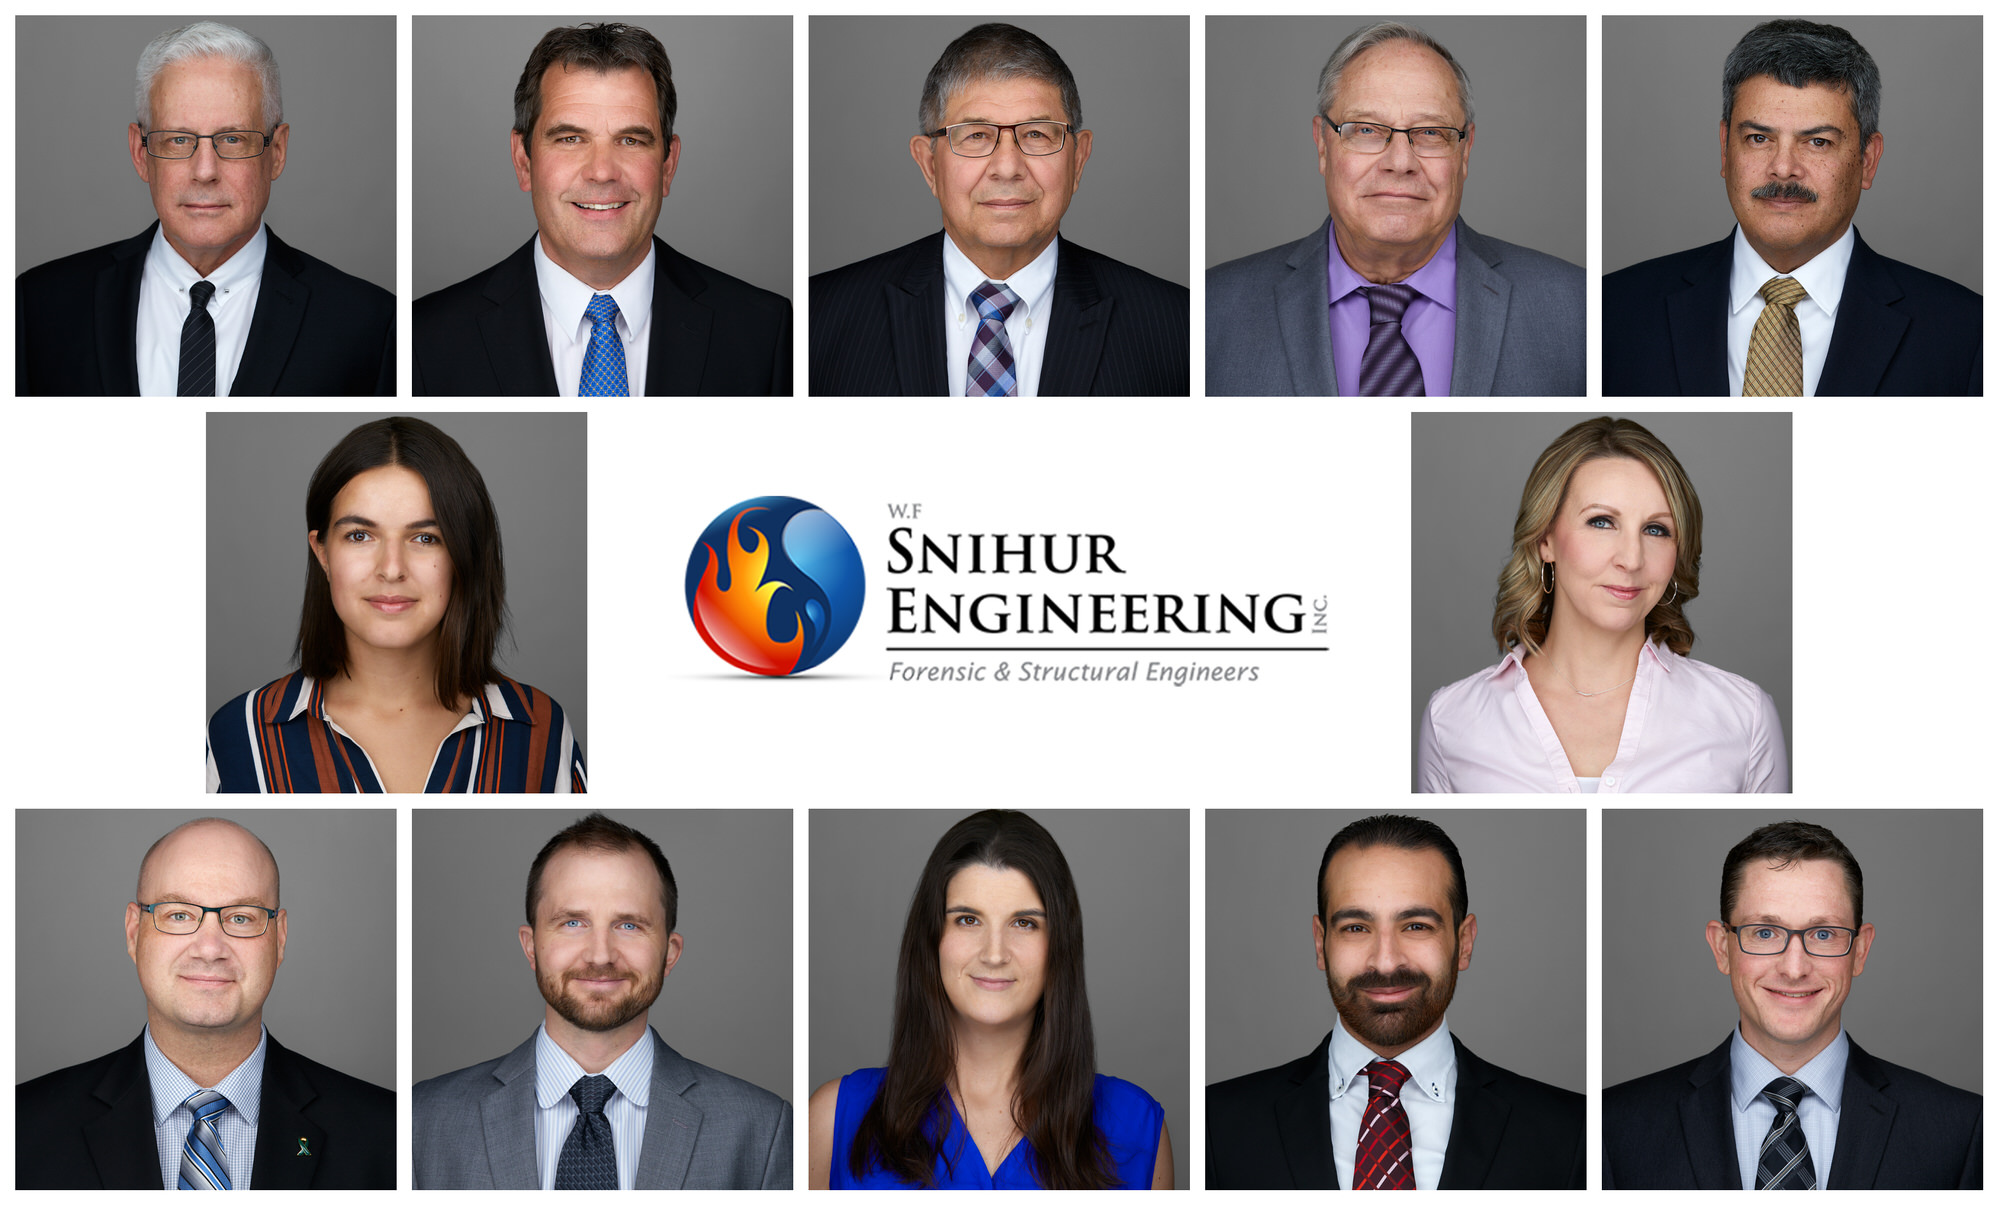 Snihur-Engineering-Inc-Corporate-headshots-business-headshot-team-portfolio-group-portrait-linkedin-profile-edmonton-alberta-calgary-Ryan-Parker-Photography.jpg